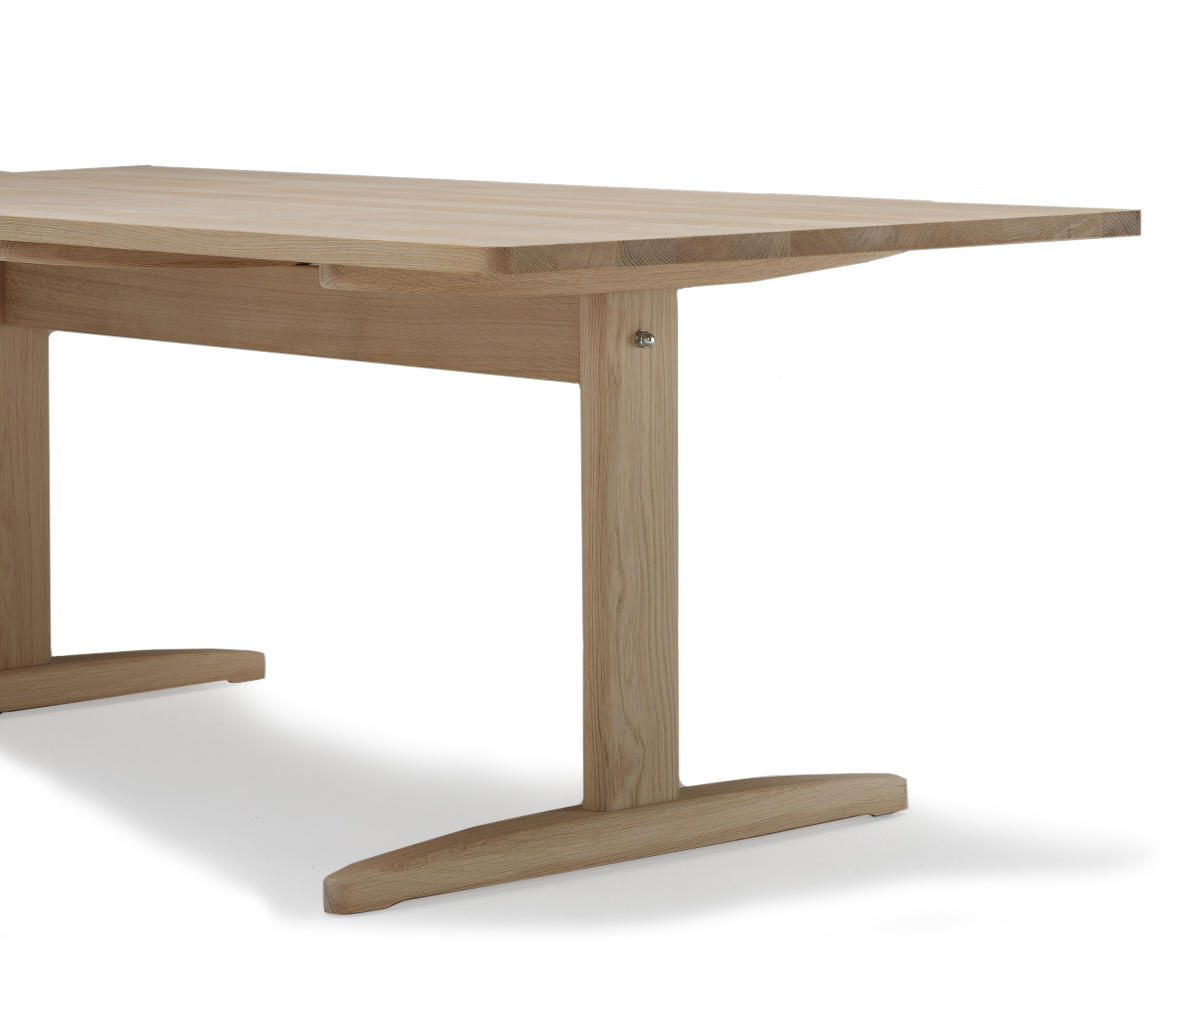 ... SHAKER TABLE By Dk3 | Restaurant Tables ...